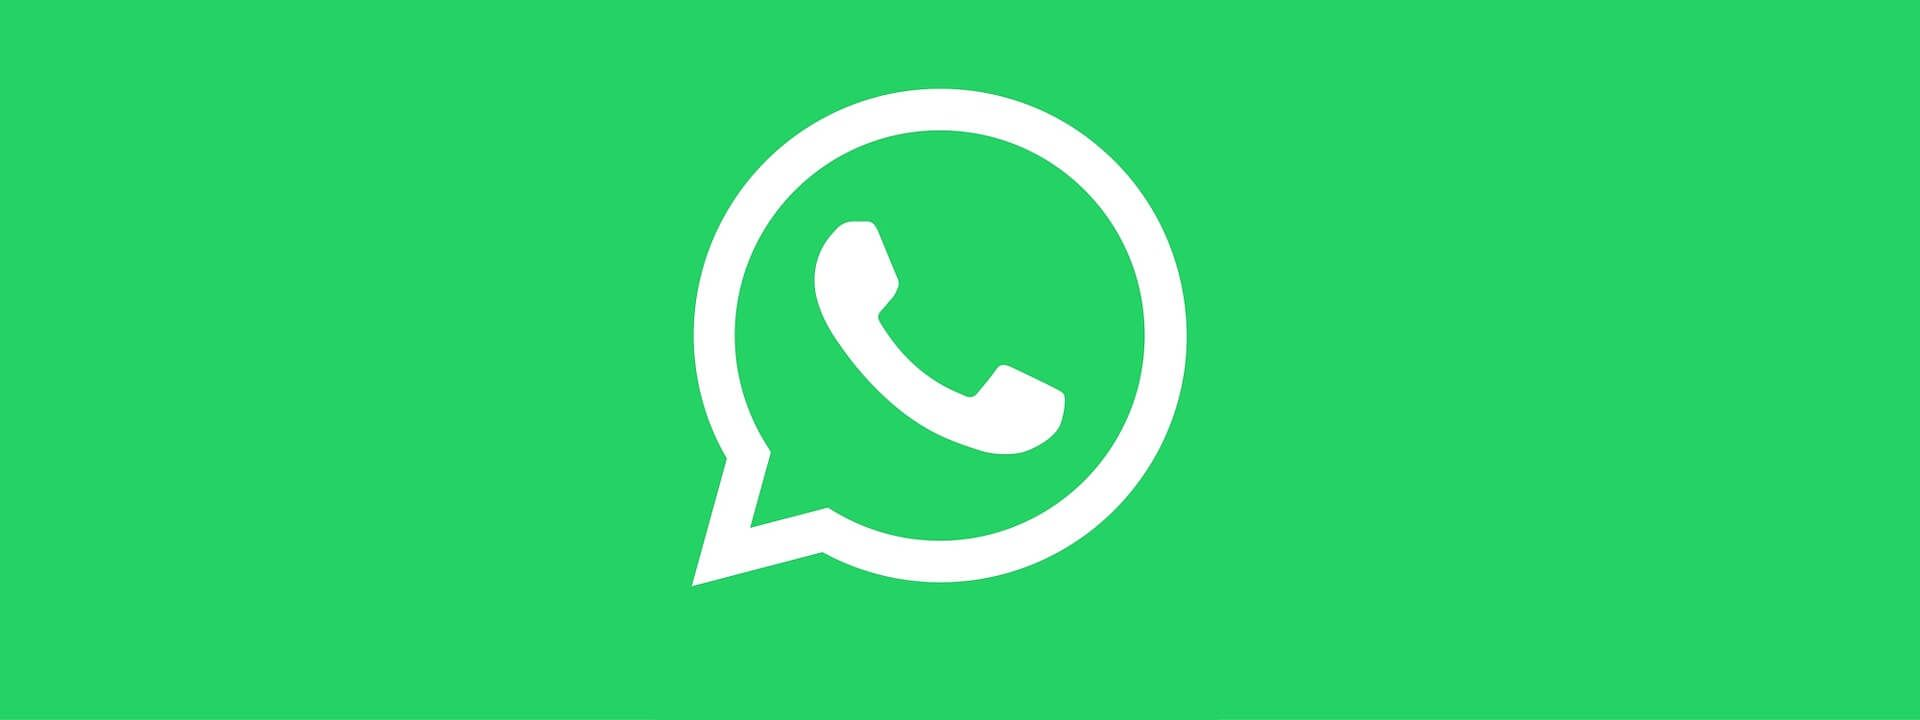 How to Recover Deleted WhatsApp Messages on iPhone in 4